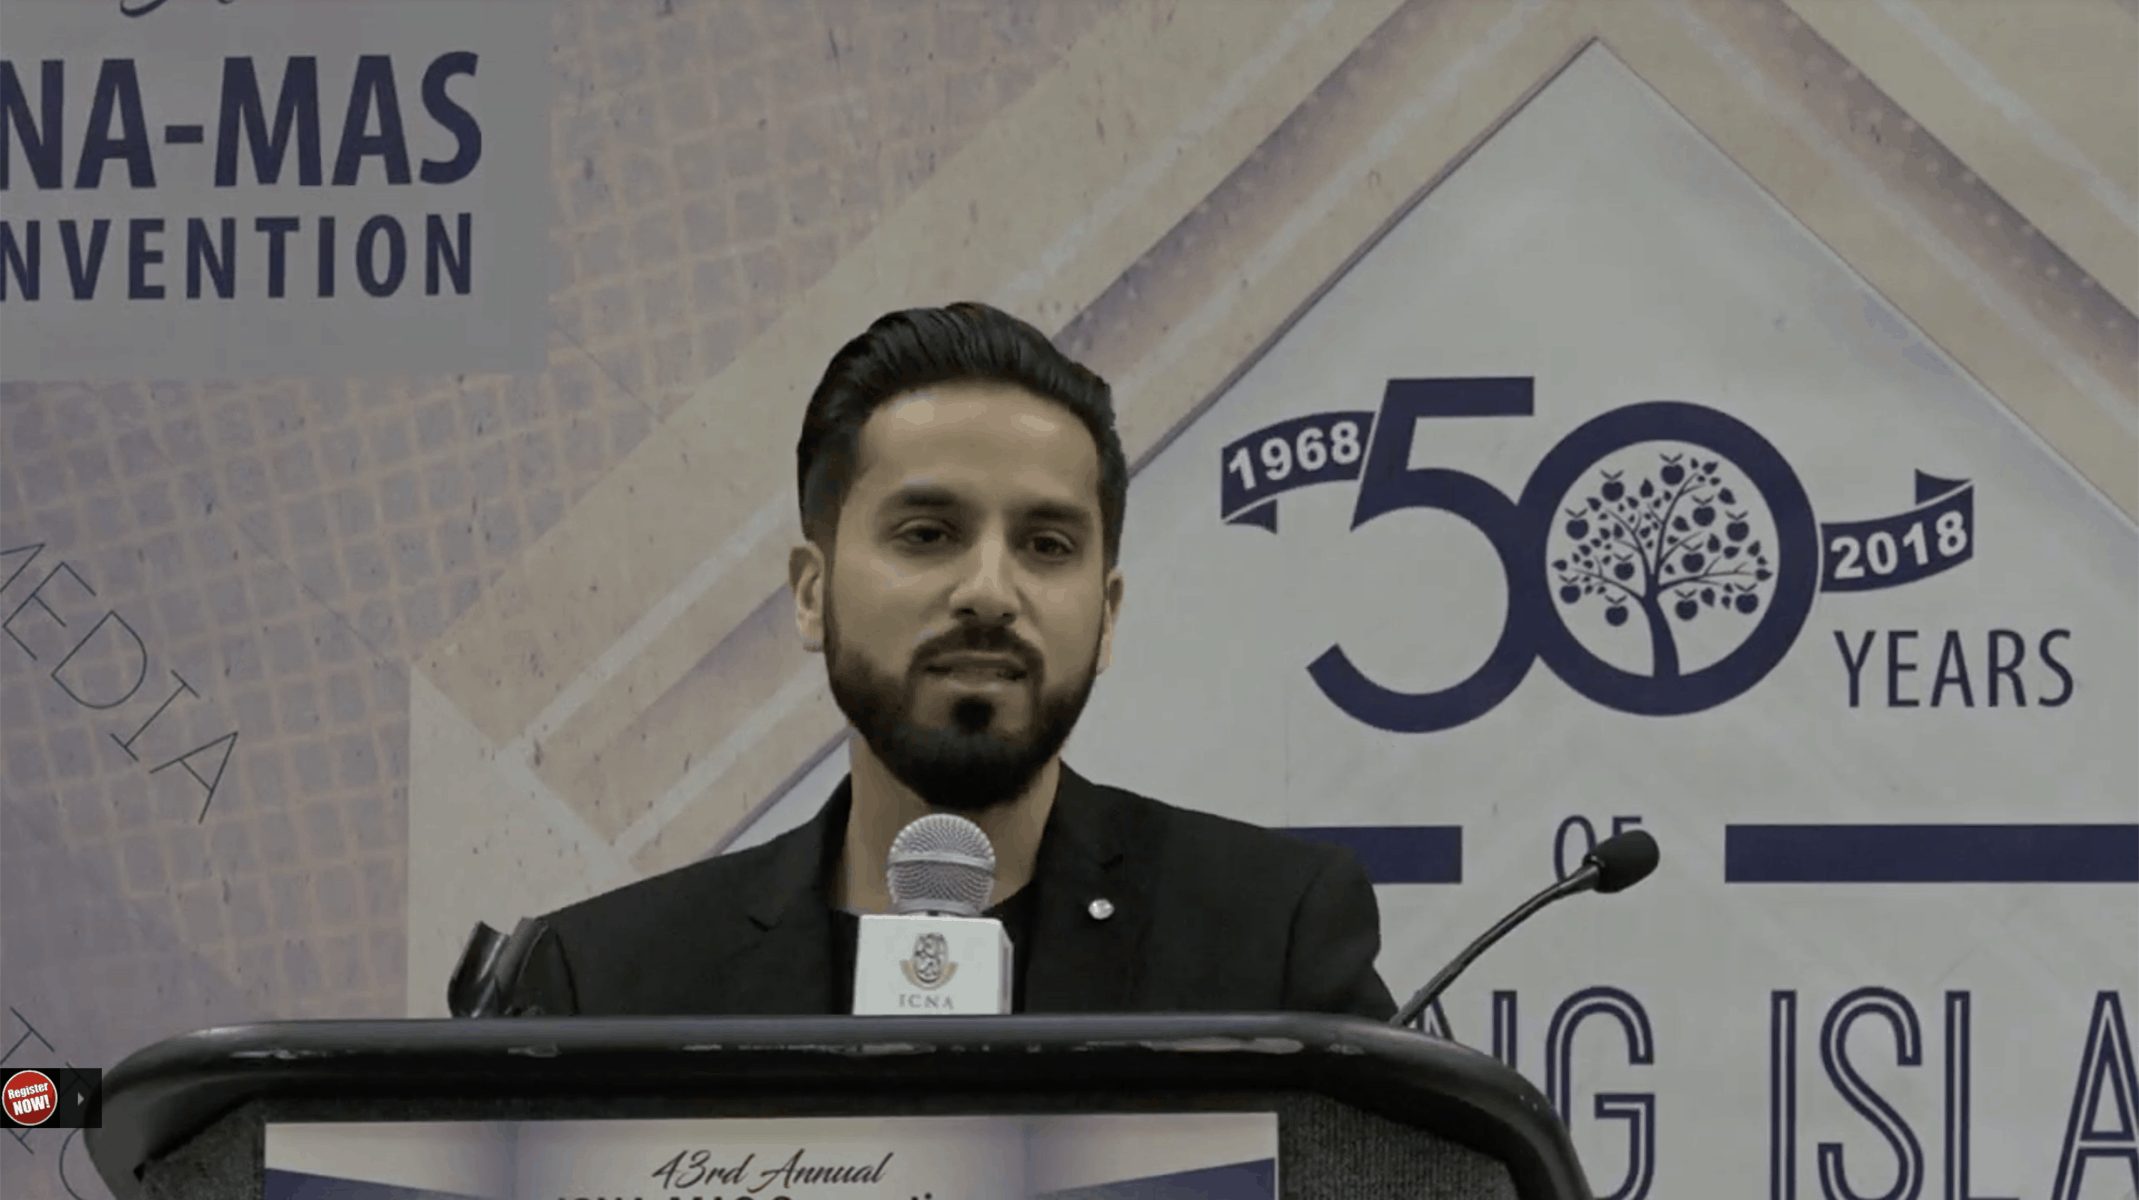 Saad Tasleem – The Challenge of Raising the Next Generation